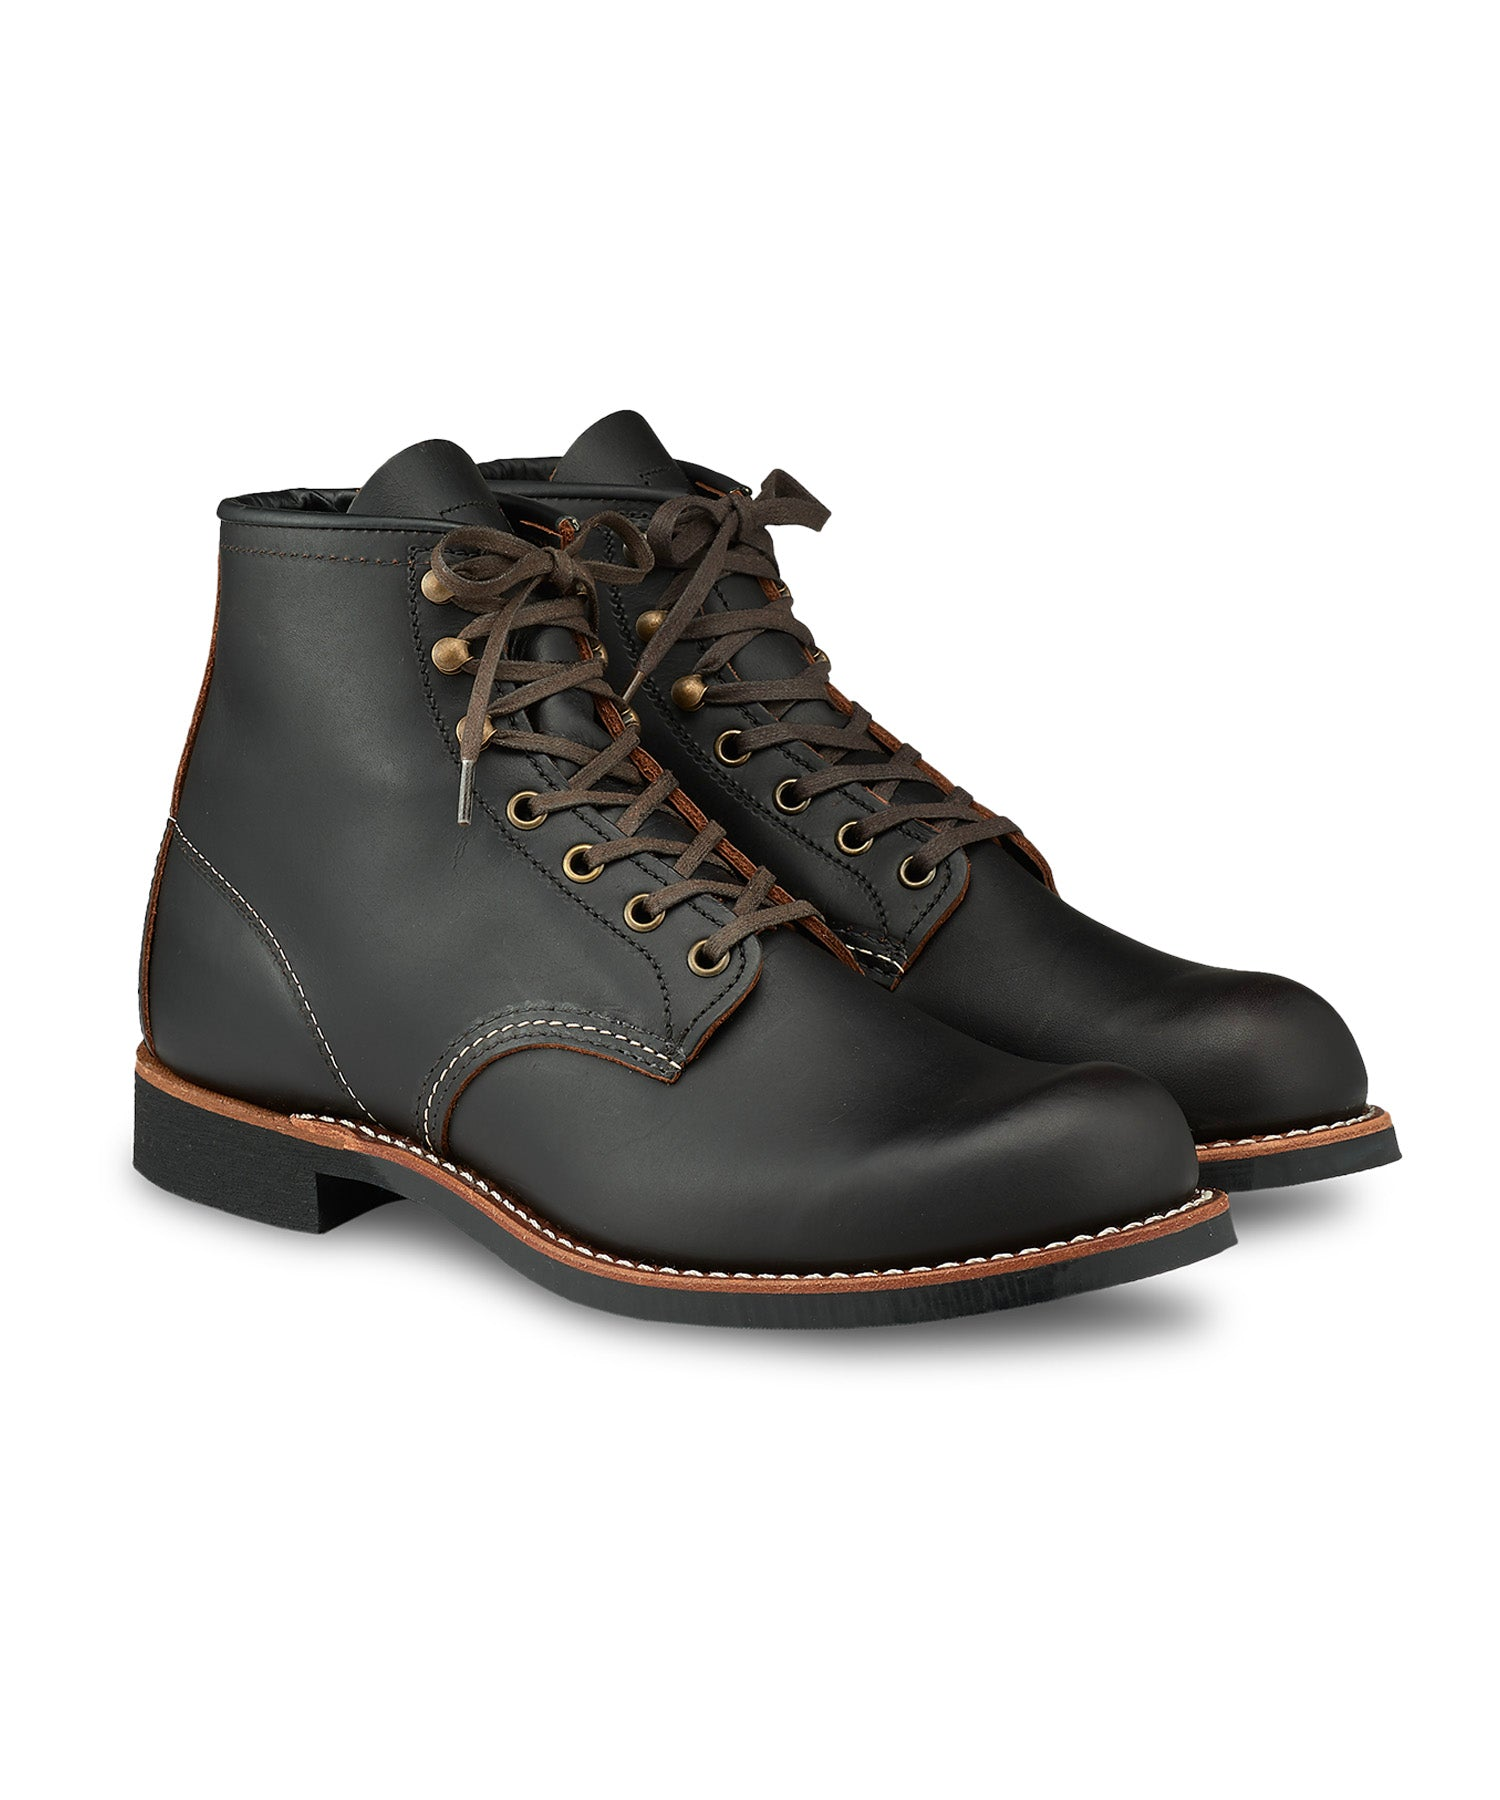 "Red Wing 3345 Blacksmith 6"" Boot in Black Prairie Leather"